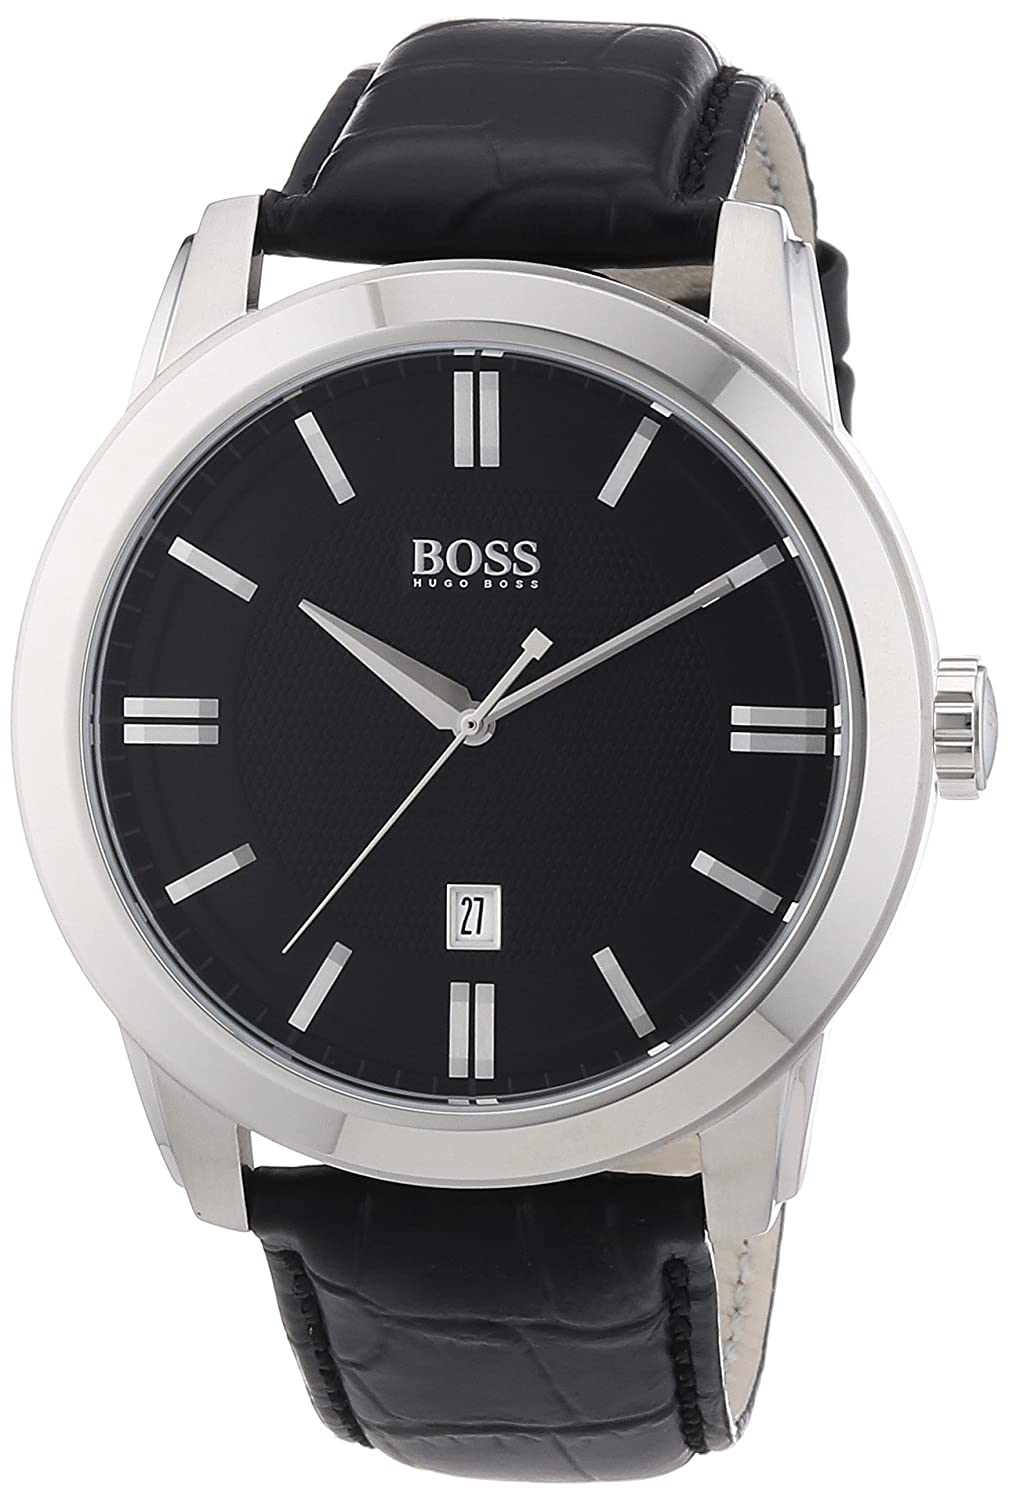 Hugo Boss Black Dial Black Leather Mens Watch 1512767 boss orange толстовка